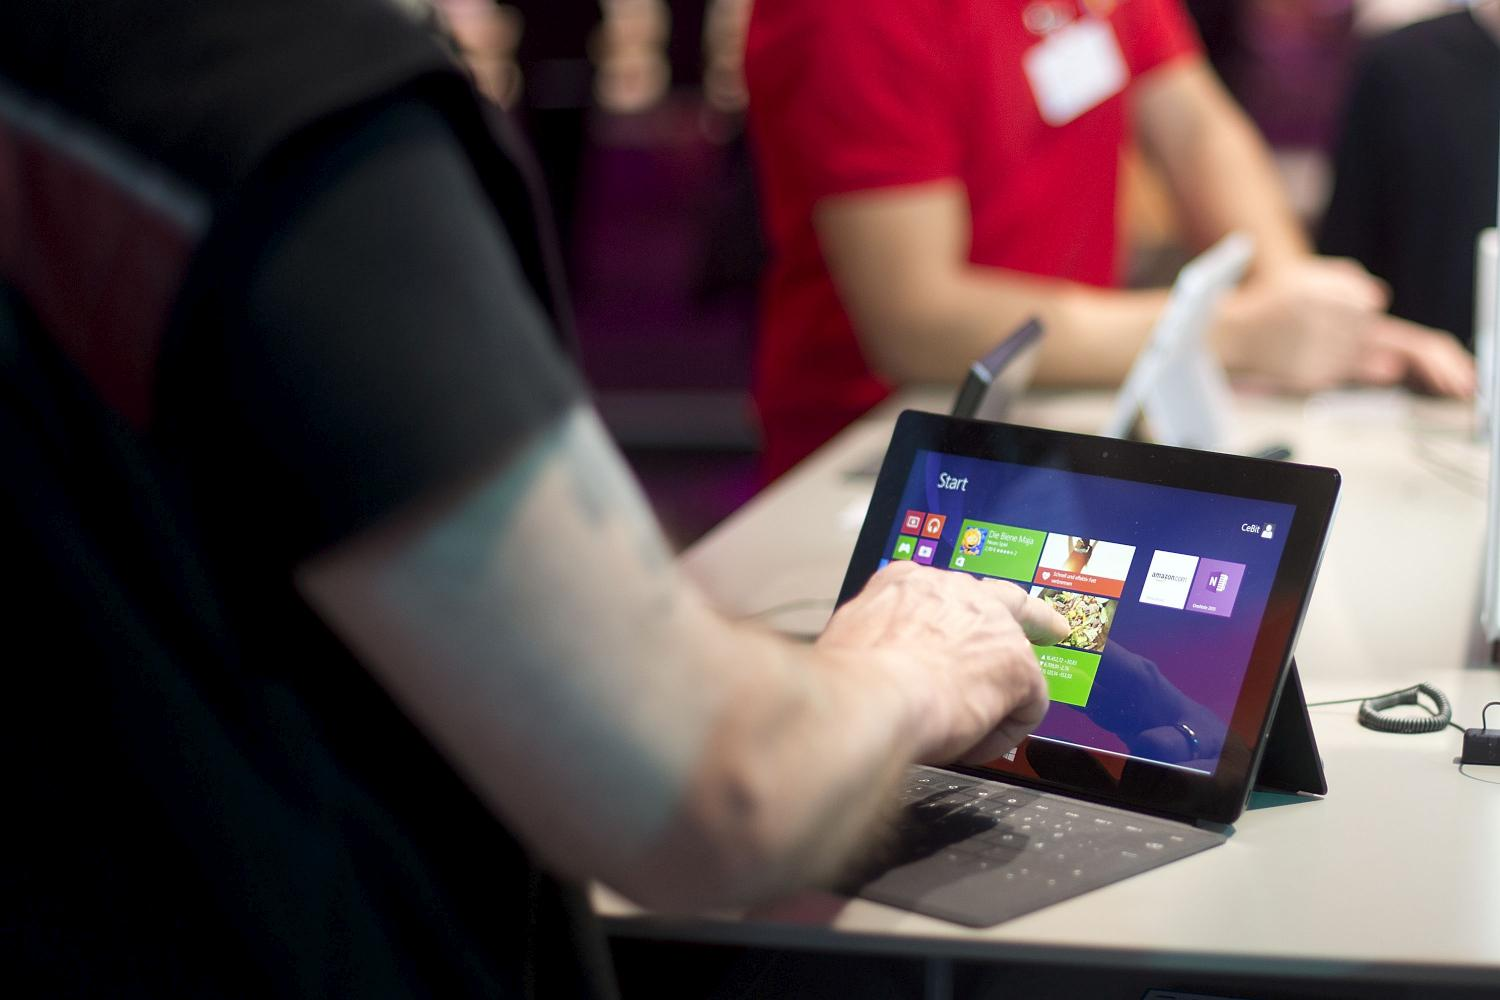 Microsoft's 10.6-inch Surface tablet